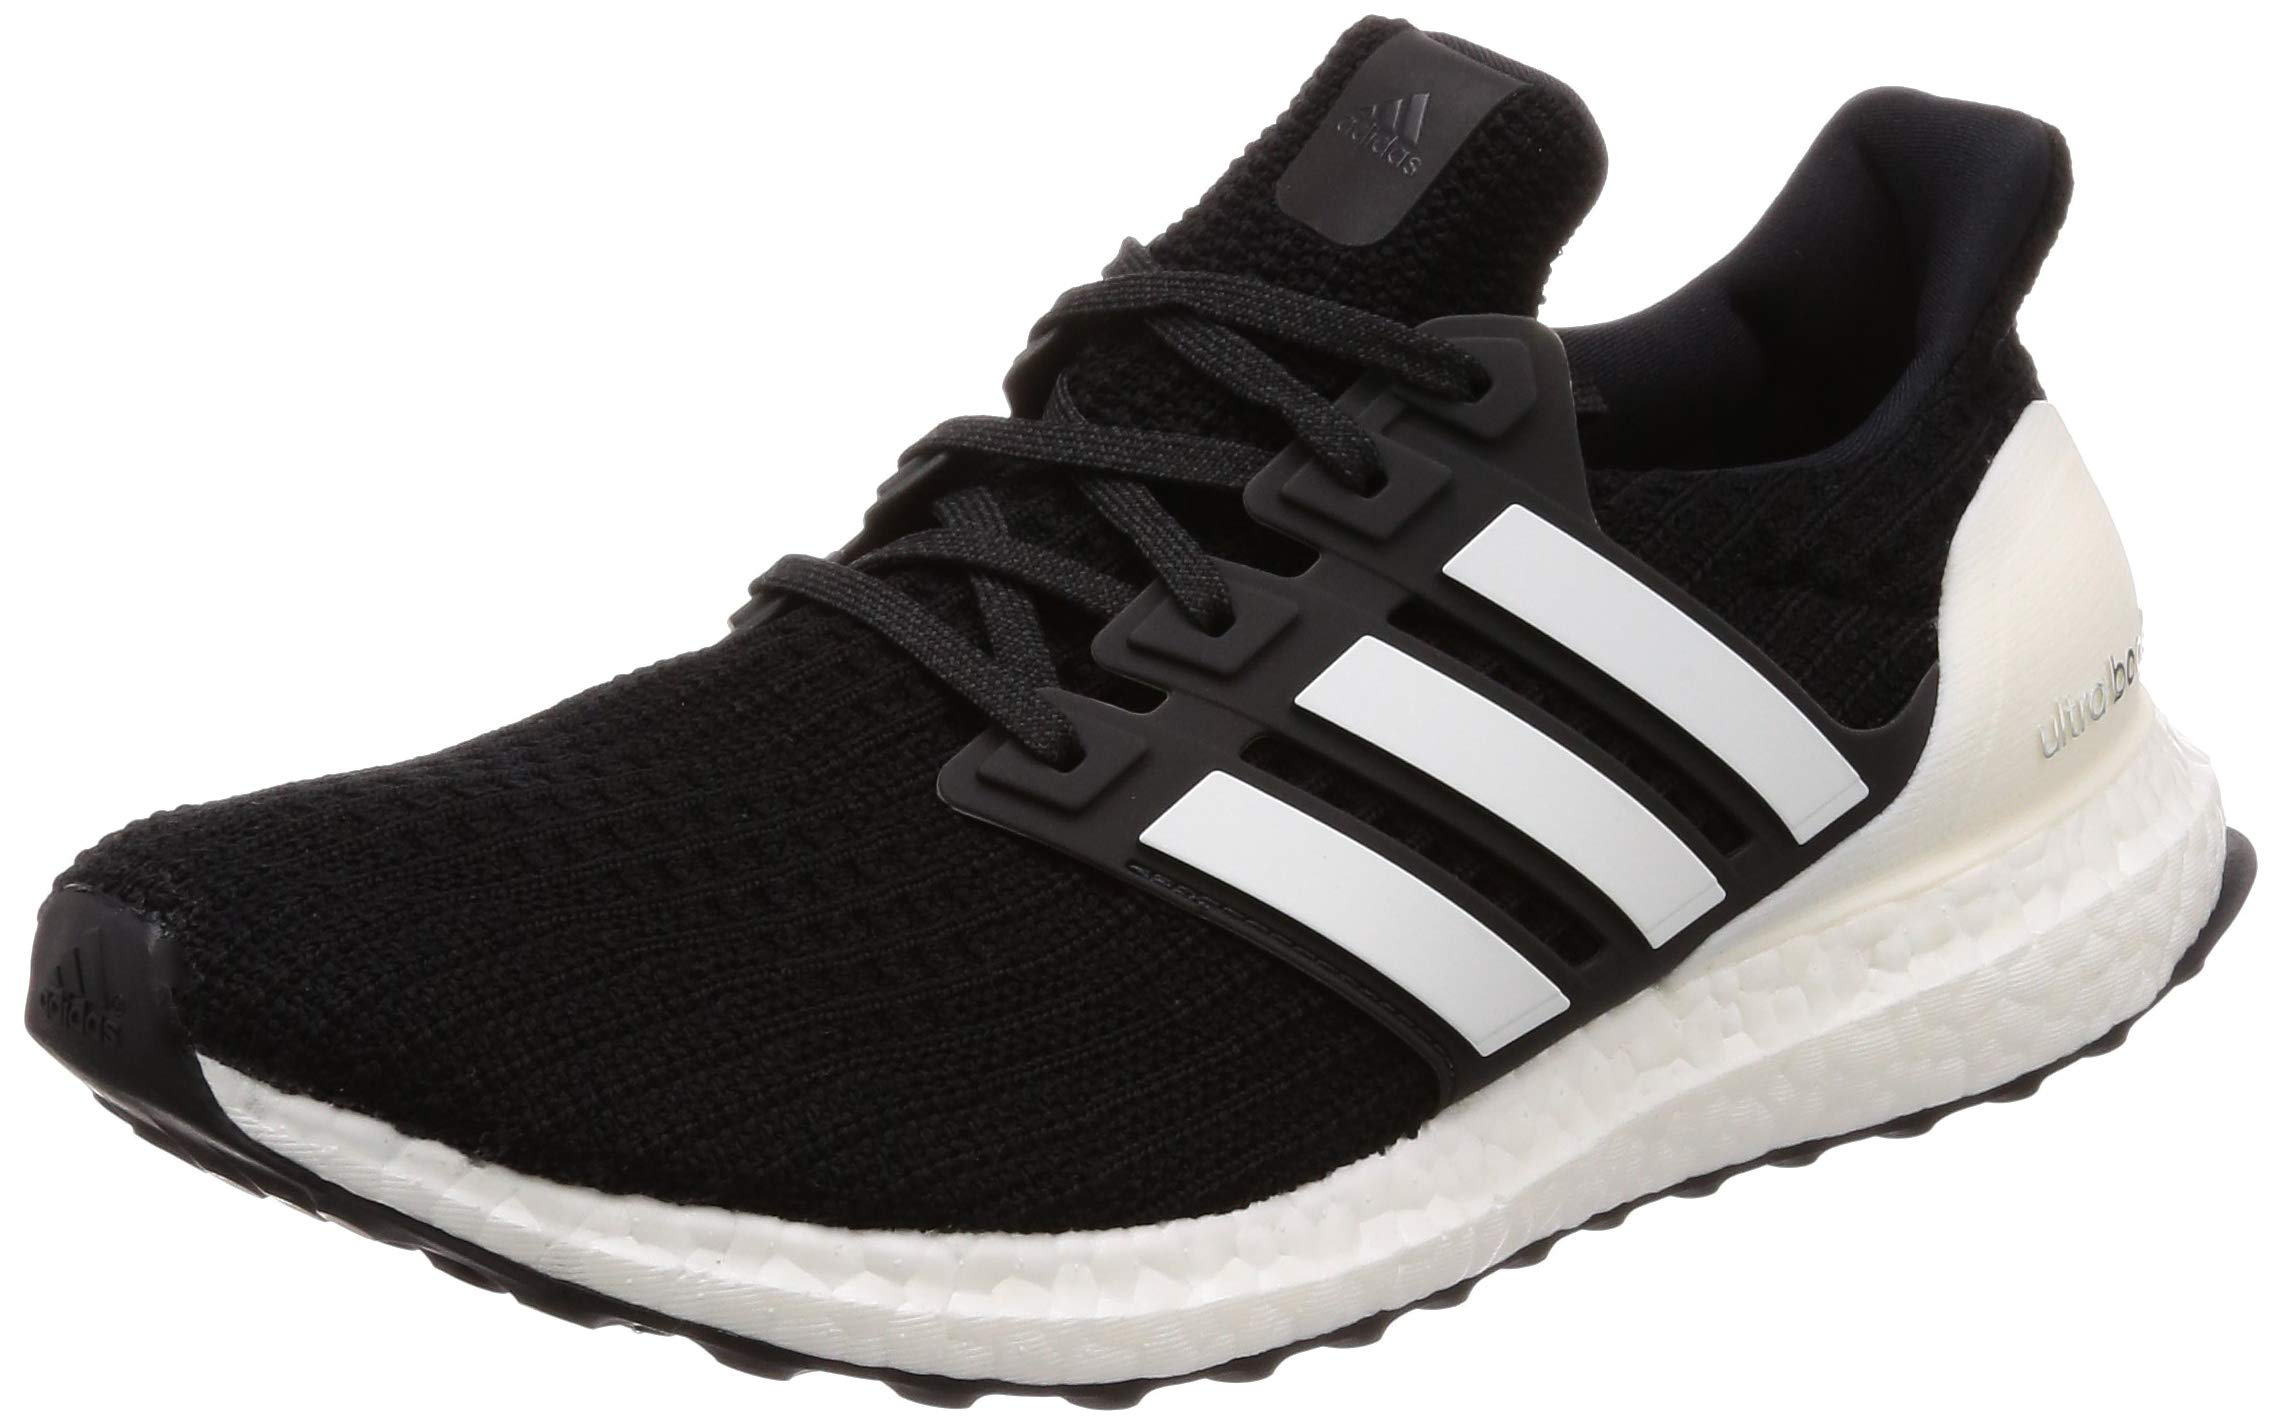 Adidas Ultra Boost 10.5 Black Top Deals   Lowest Price  617070ae6